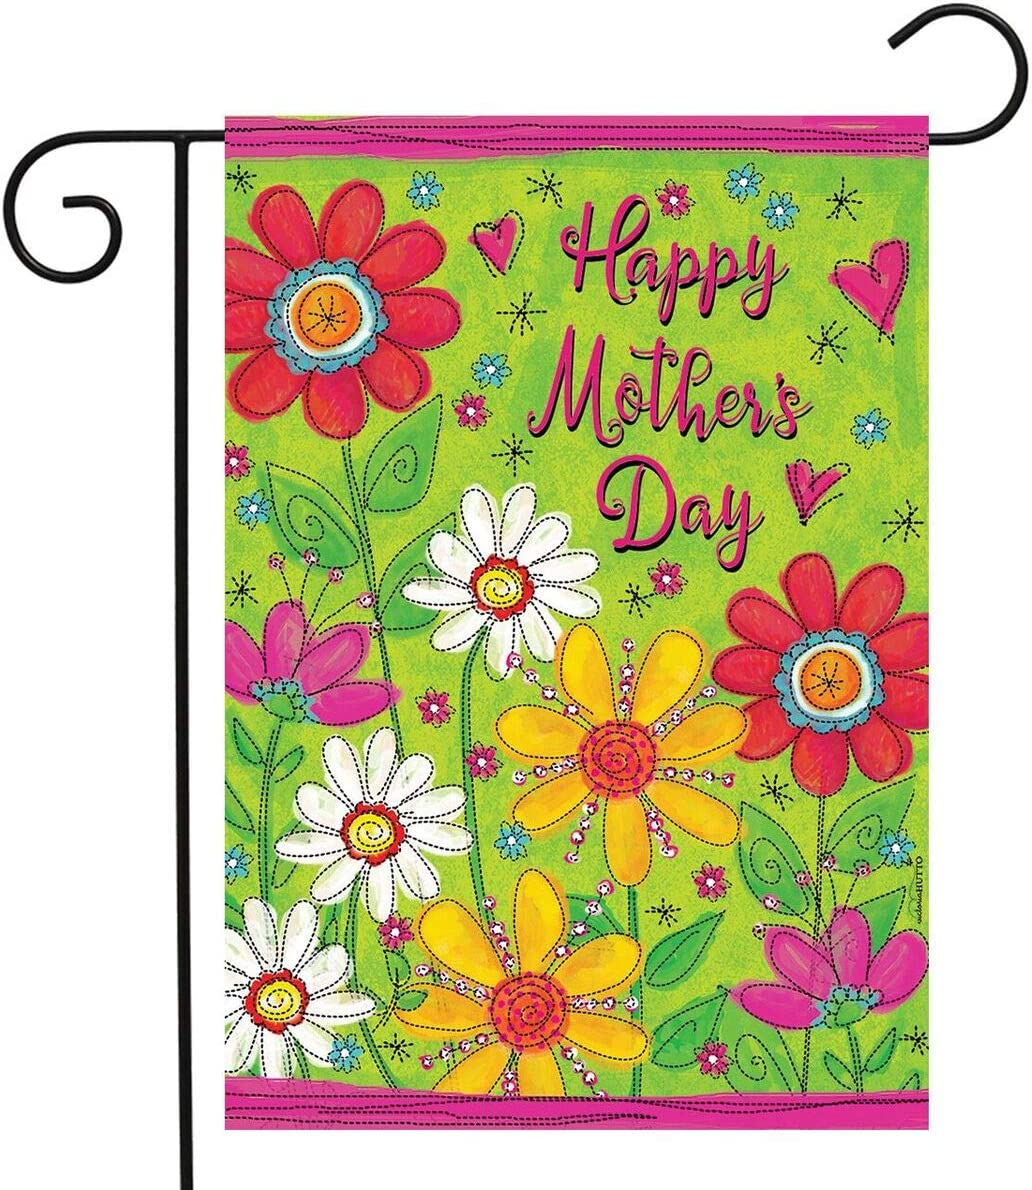 """Briarwood Lane Mother's Day Floral Garden Flag Holiday Daisies 12.5"""" x 18"""""""